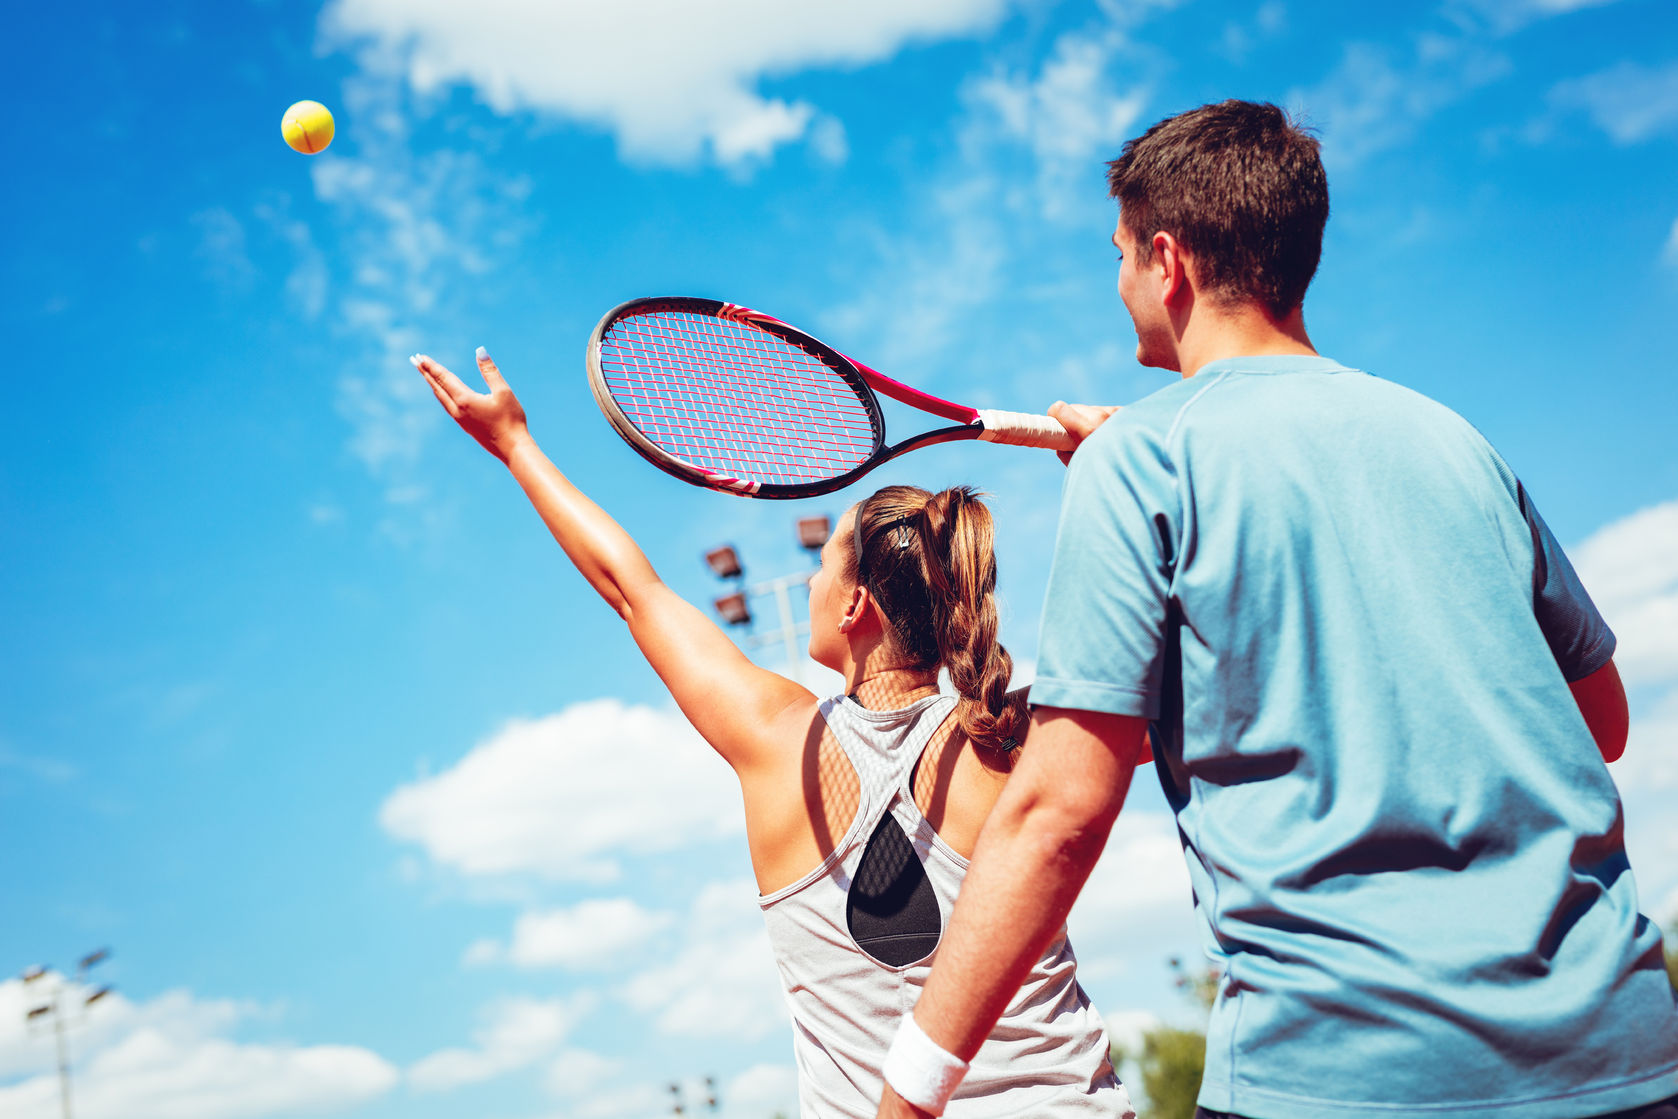 Be a tennis coach